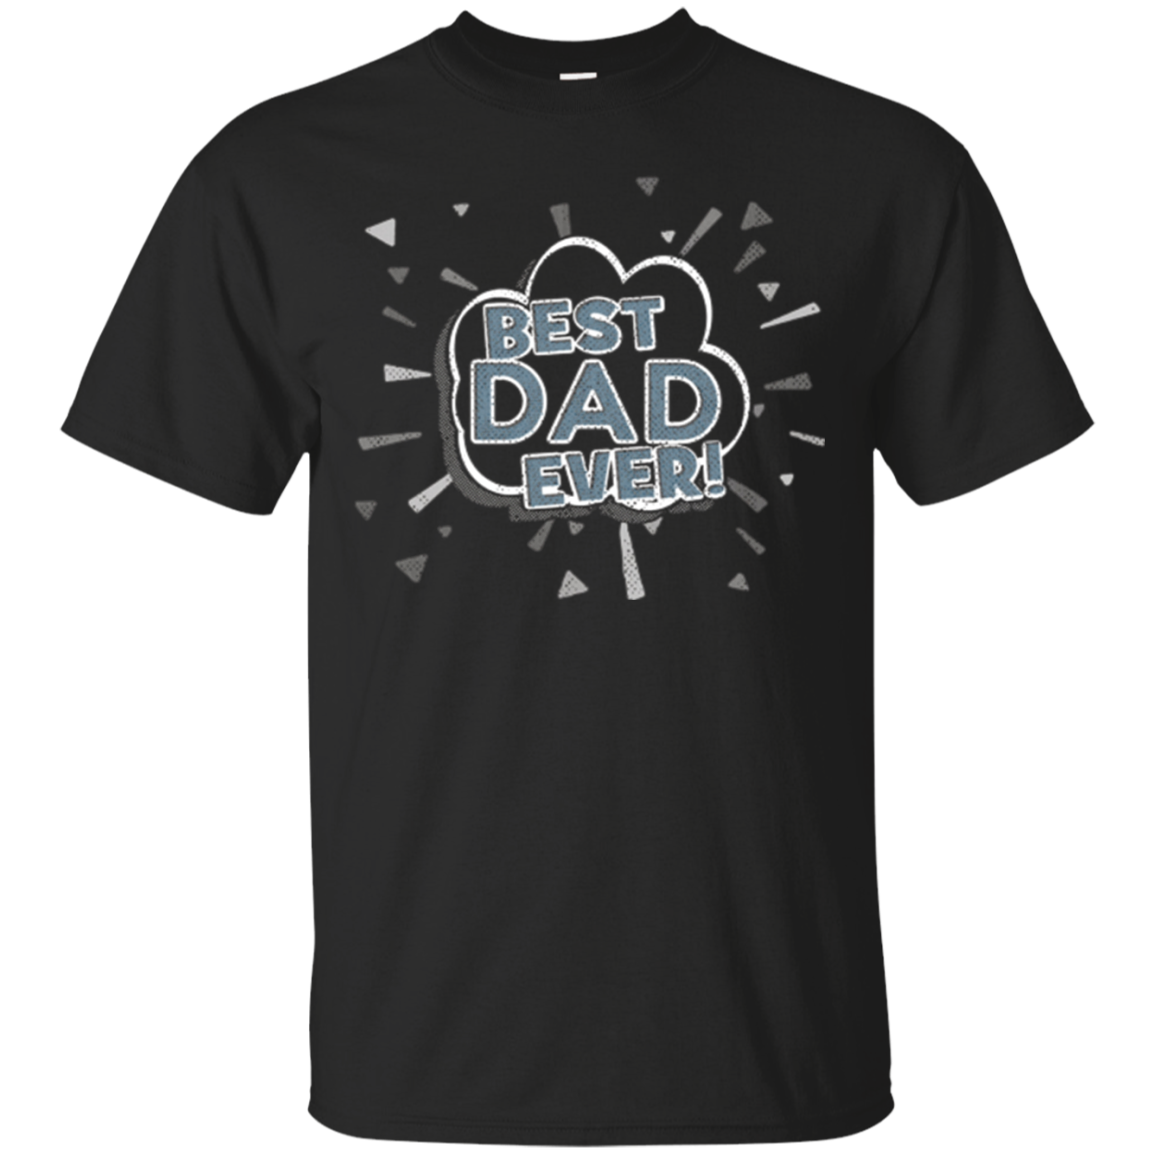 Best Dad Ever Shirt Funny Fathers Day Gift